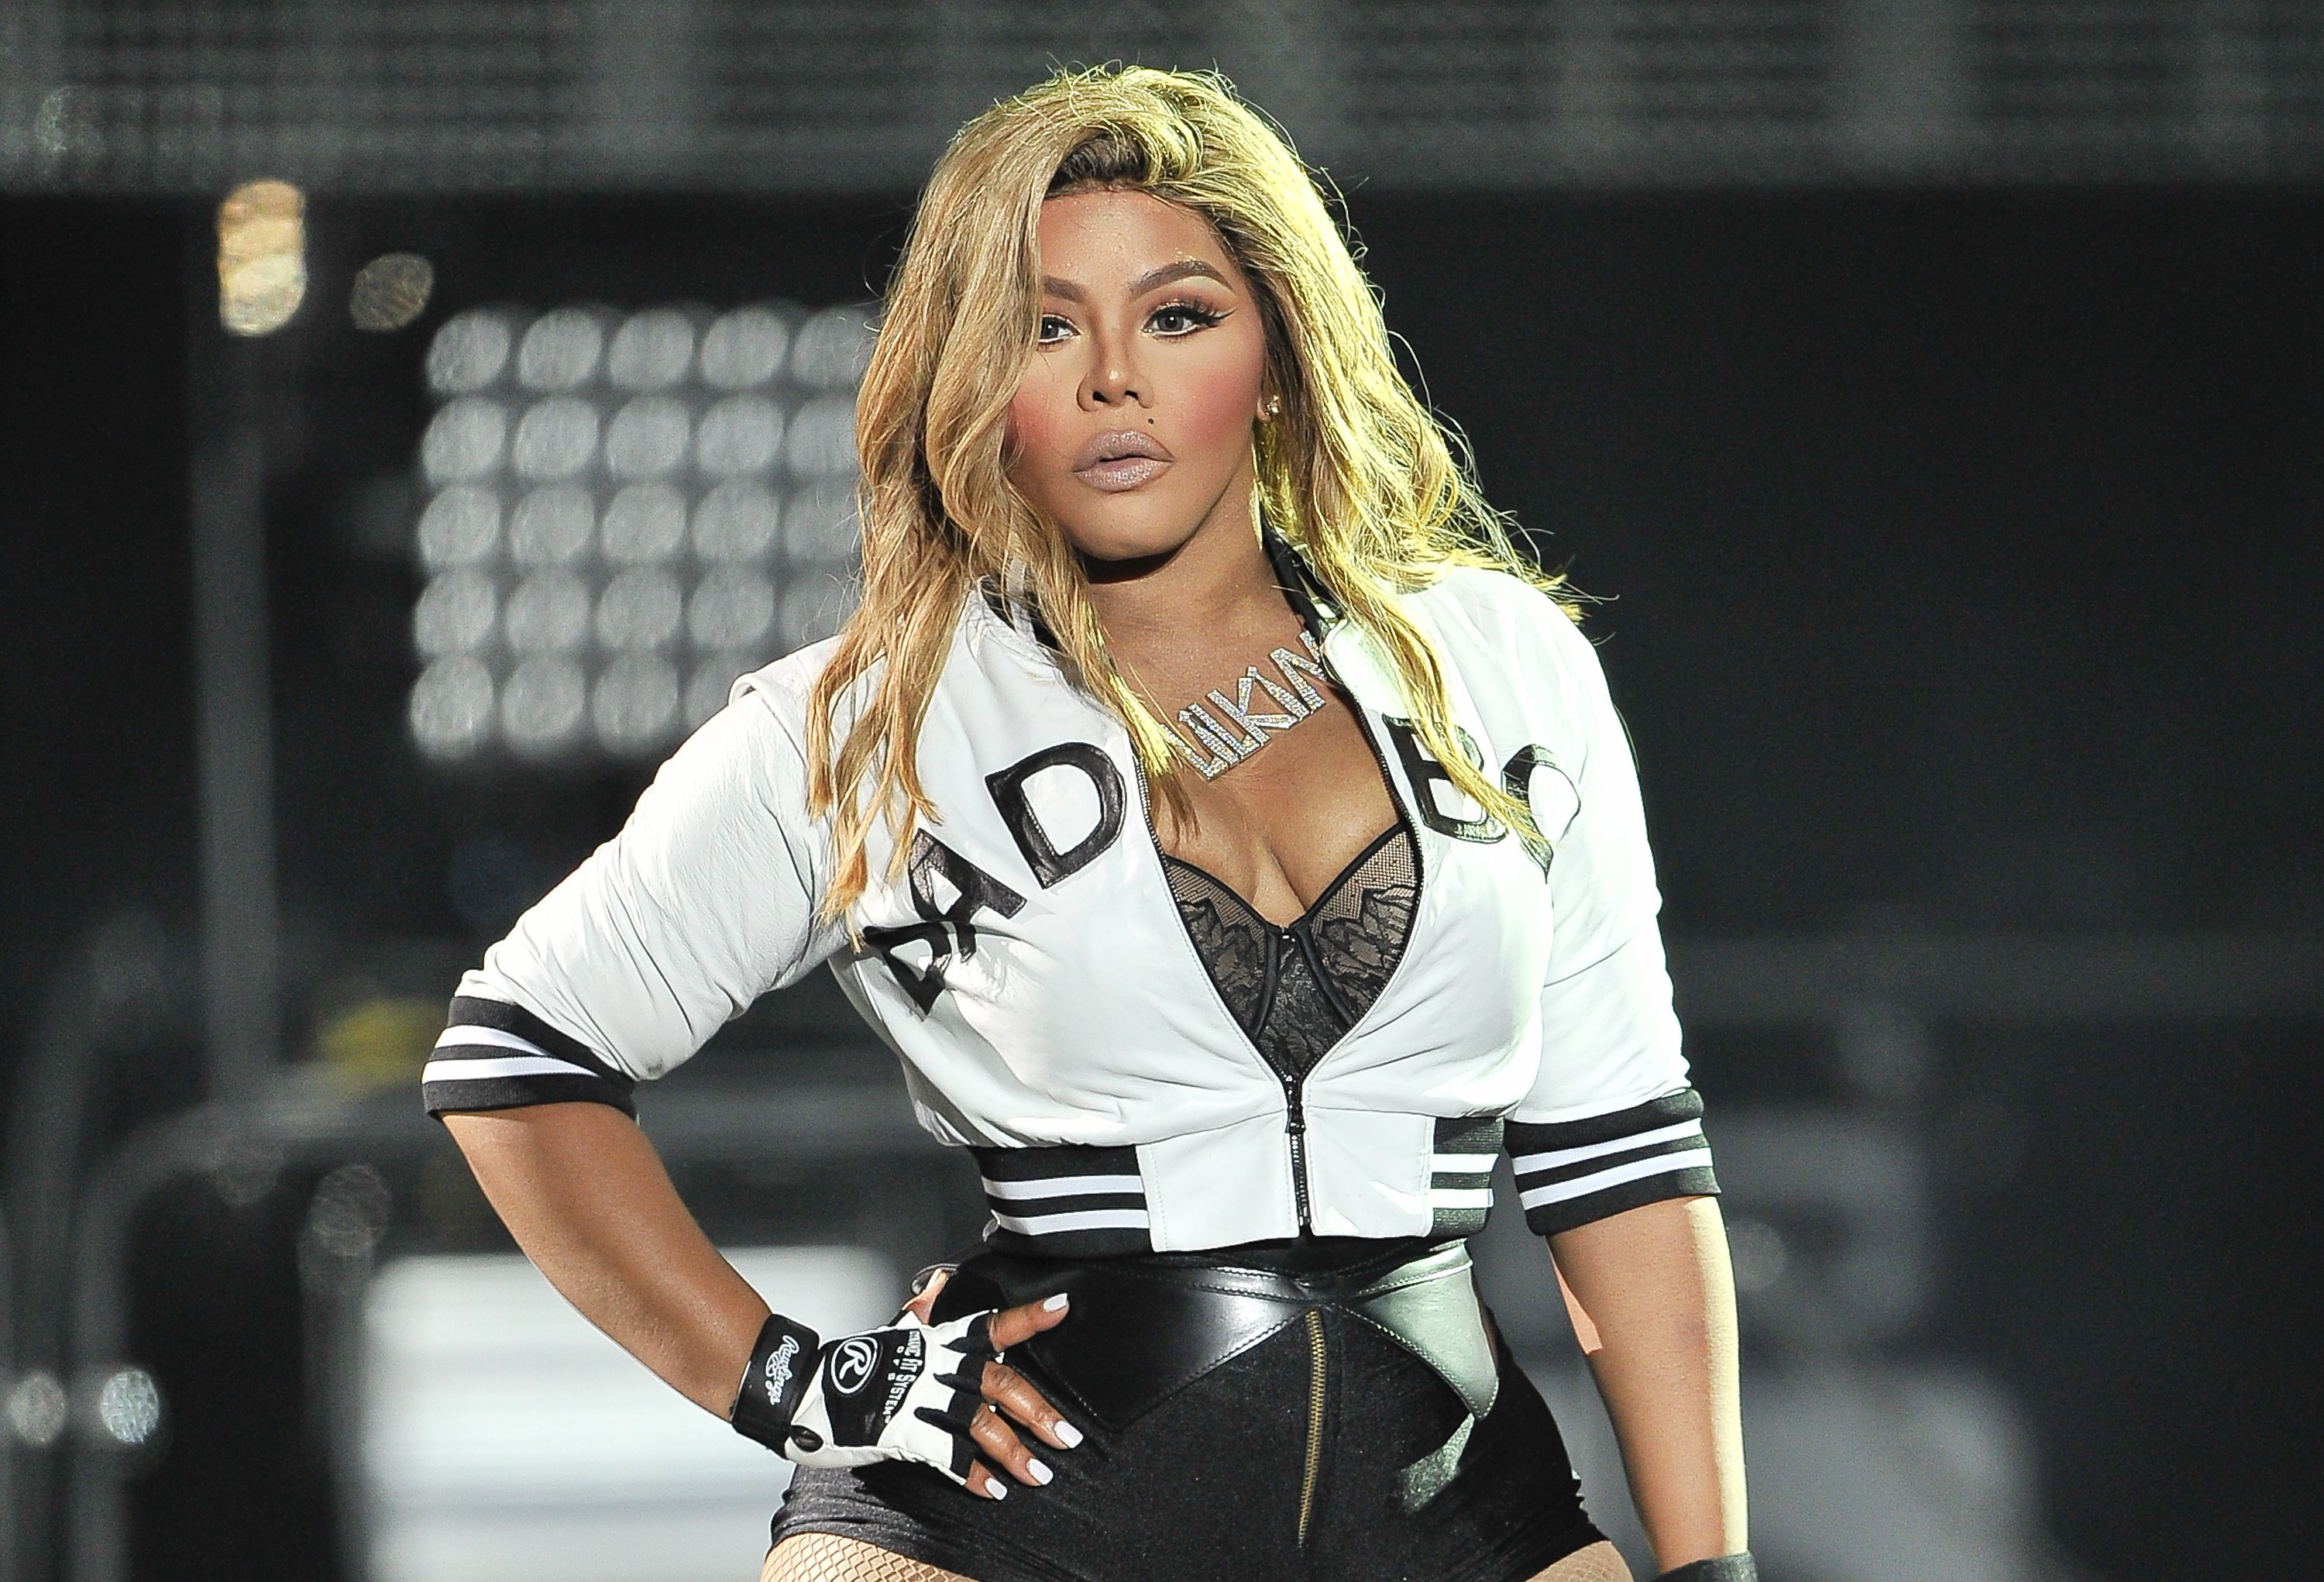 Lil' Kim performing at the Bad Boy Family Reunion Tour at ORACLE Arena on September 30, 2016 in Oakland, California. | Source: Getty